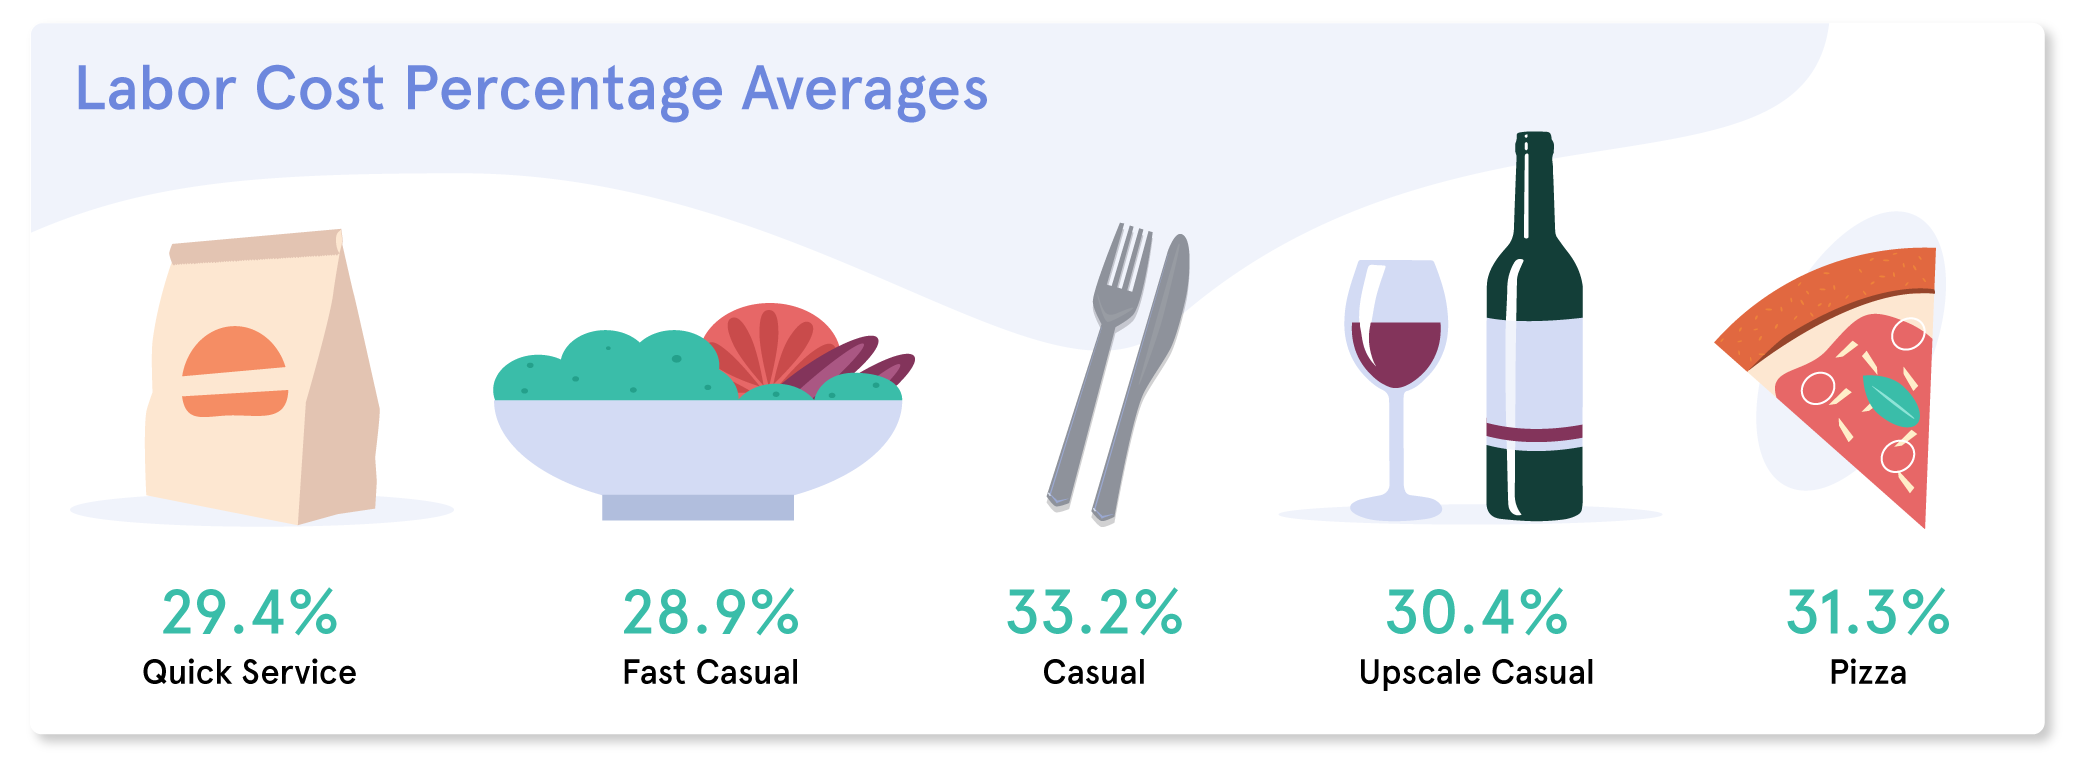 Labor cost percentage averages for restaurants